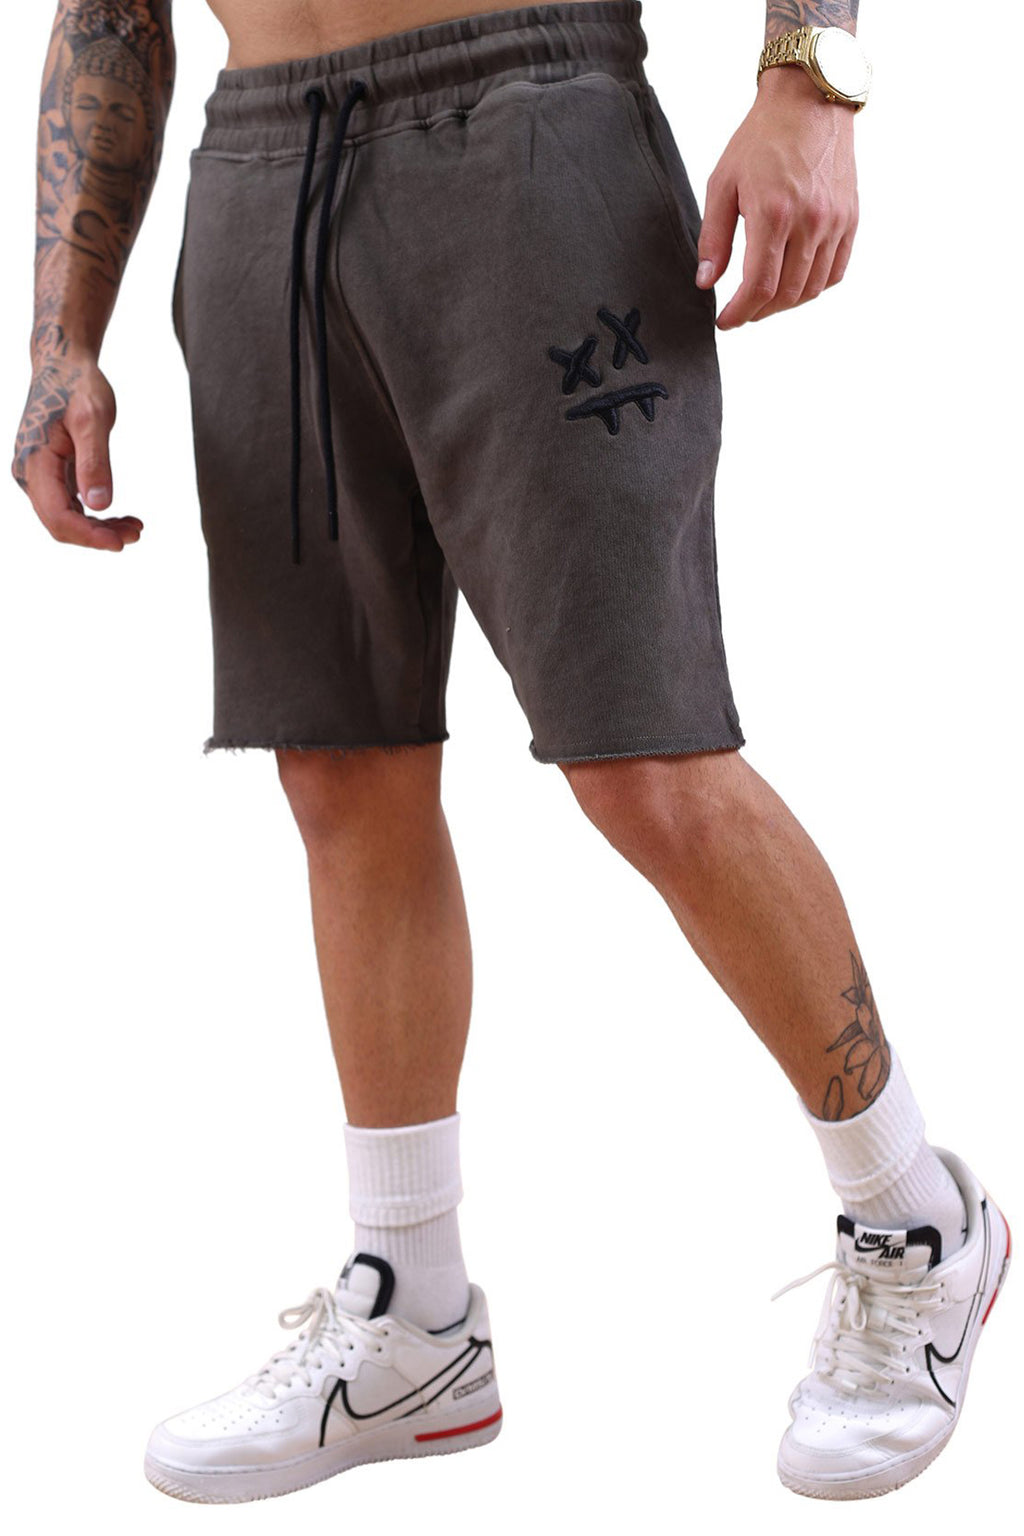 SikSilk X Steve Aoki Relaxed Shorts Wash Grey